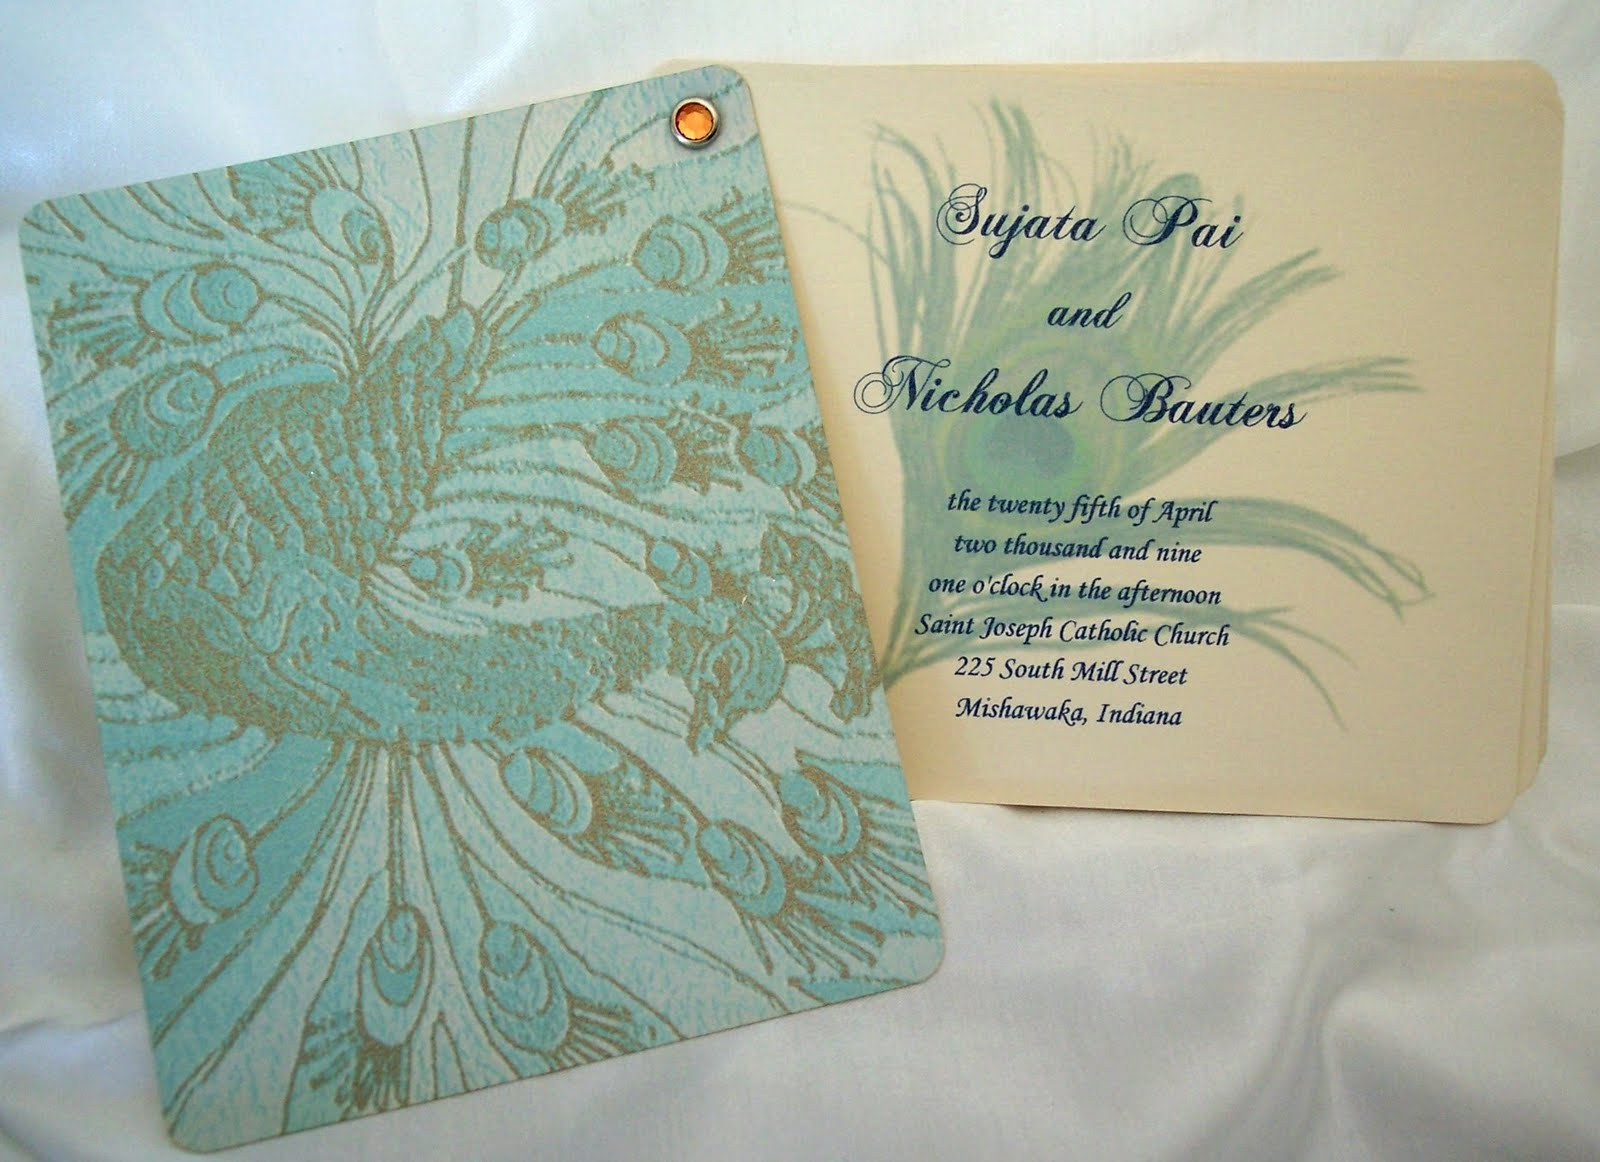 ... wedding program, table numbers, menu card, food cards, thank you cards